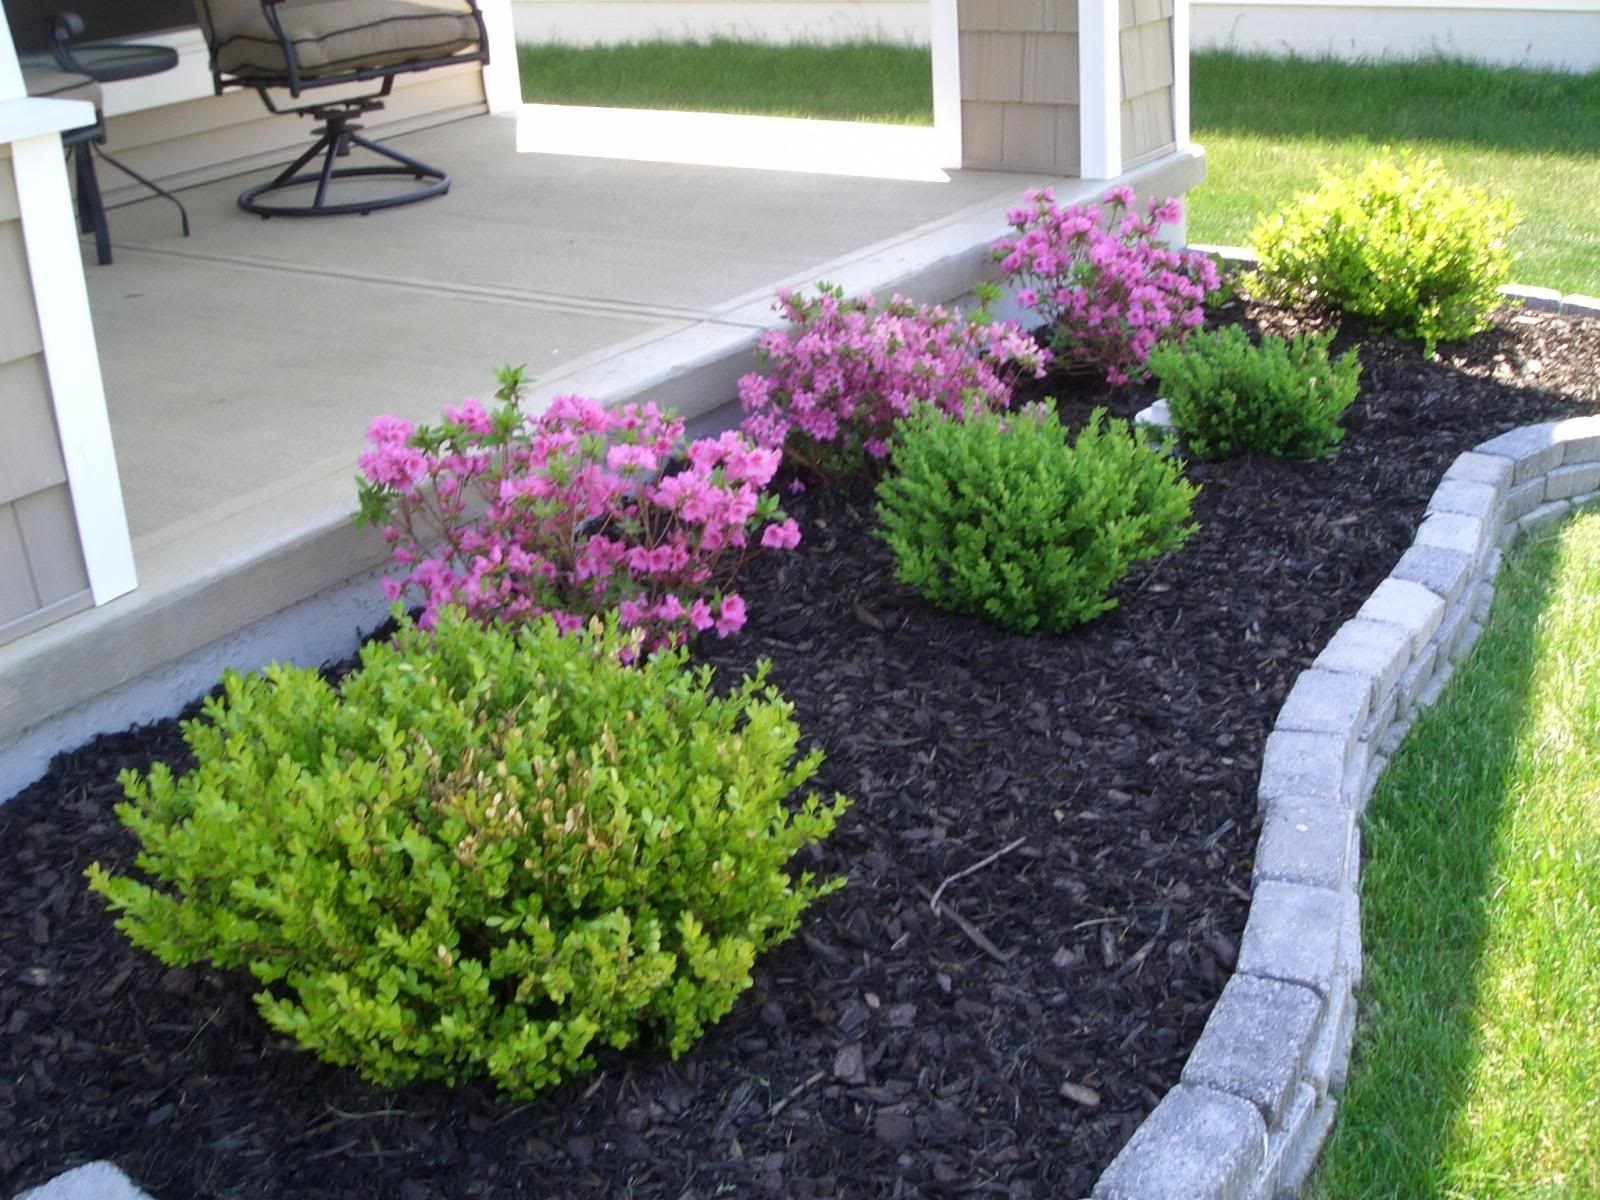 Landscaping Pictures Of Front Yard Landscaping Small Front Yard For Small Front Yard Landscaping The Best Small Front Yard Landscaping Idea